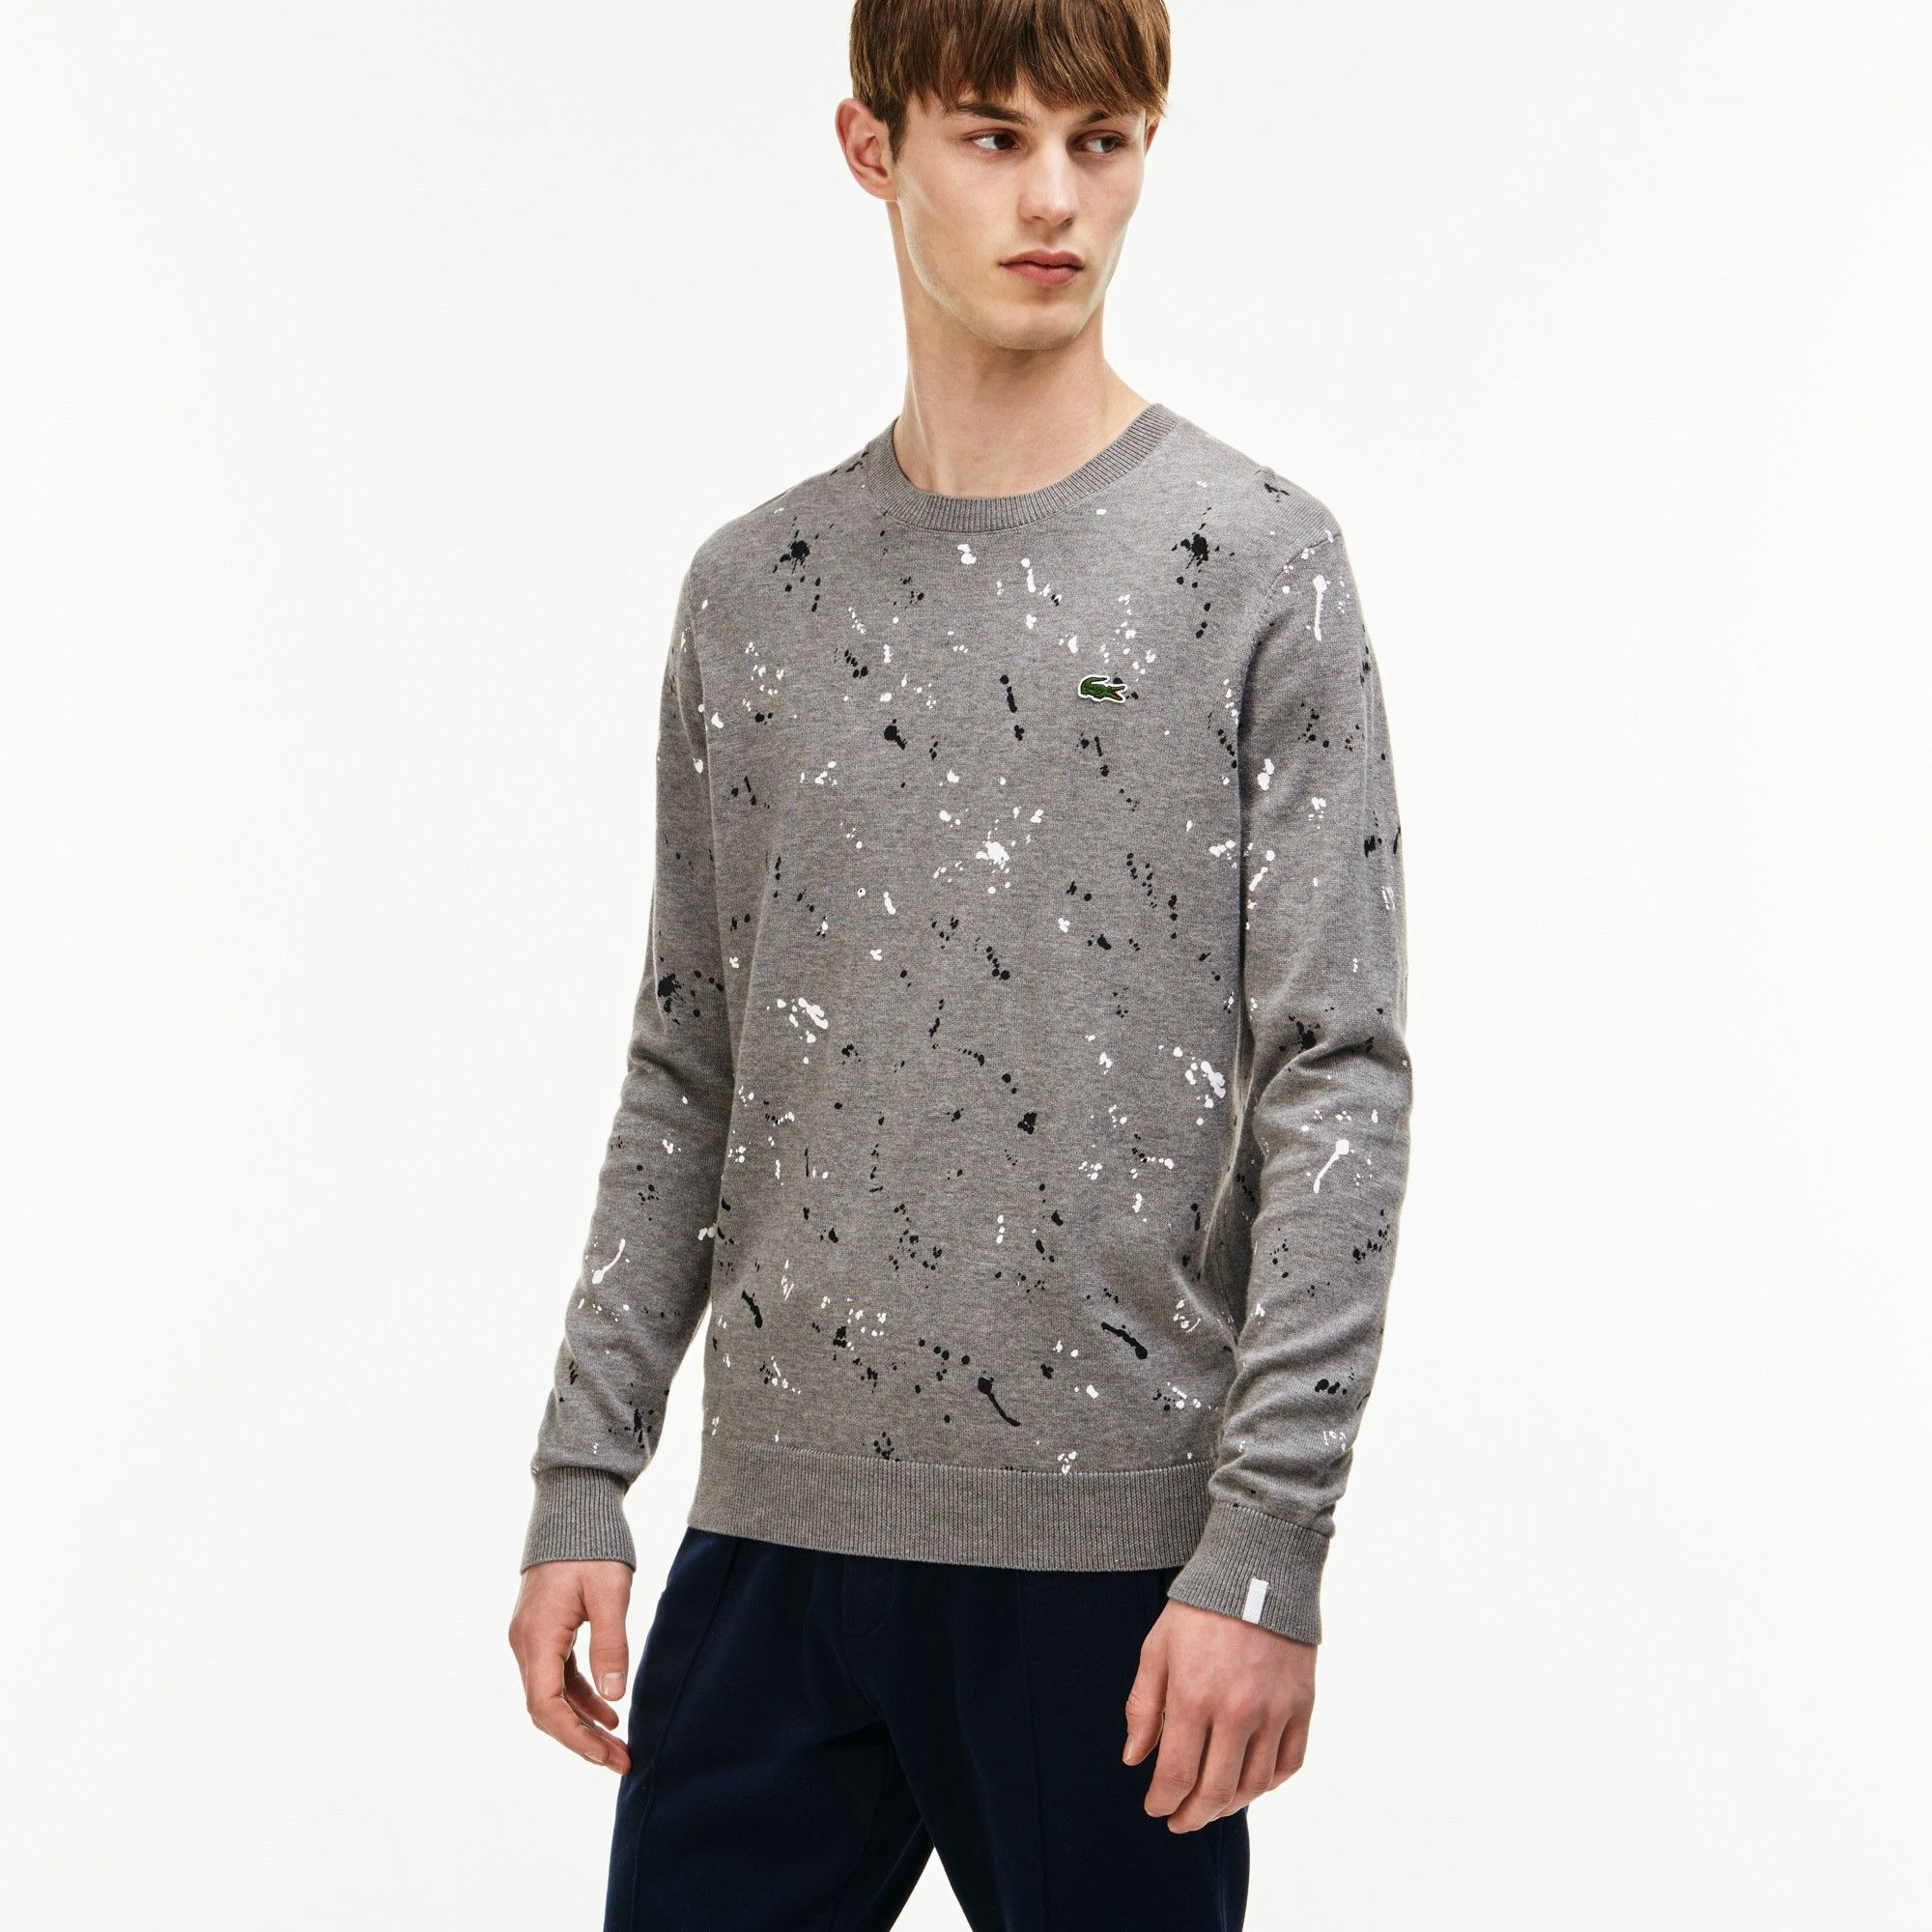 615500bd42 LACOSTE Men's Lacoste LIVE Crew Neck Speckled Print Jersey Sweater ...